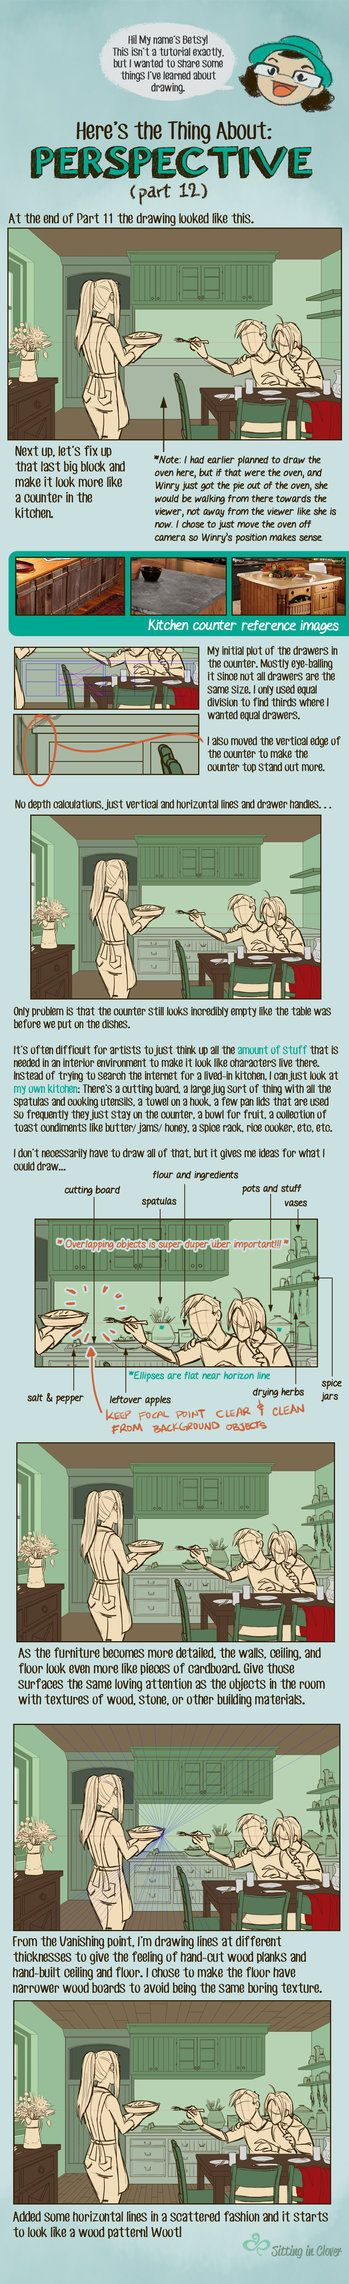 12 Here's the Thing About Perspective by betsyillustration.deviantart.com on @DeviantArt